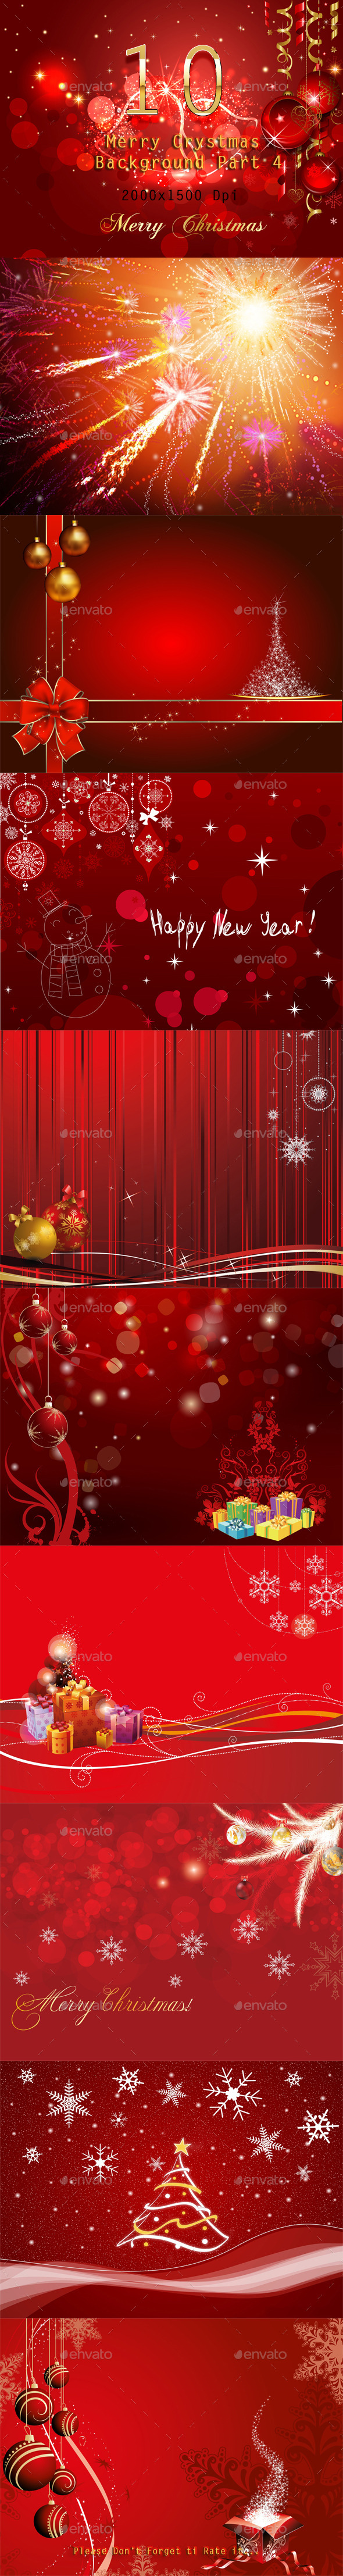 10 Merry Christmas Background Part 4 - Miscellaneous Backgrounds